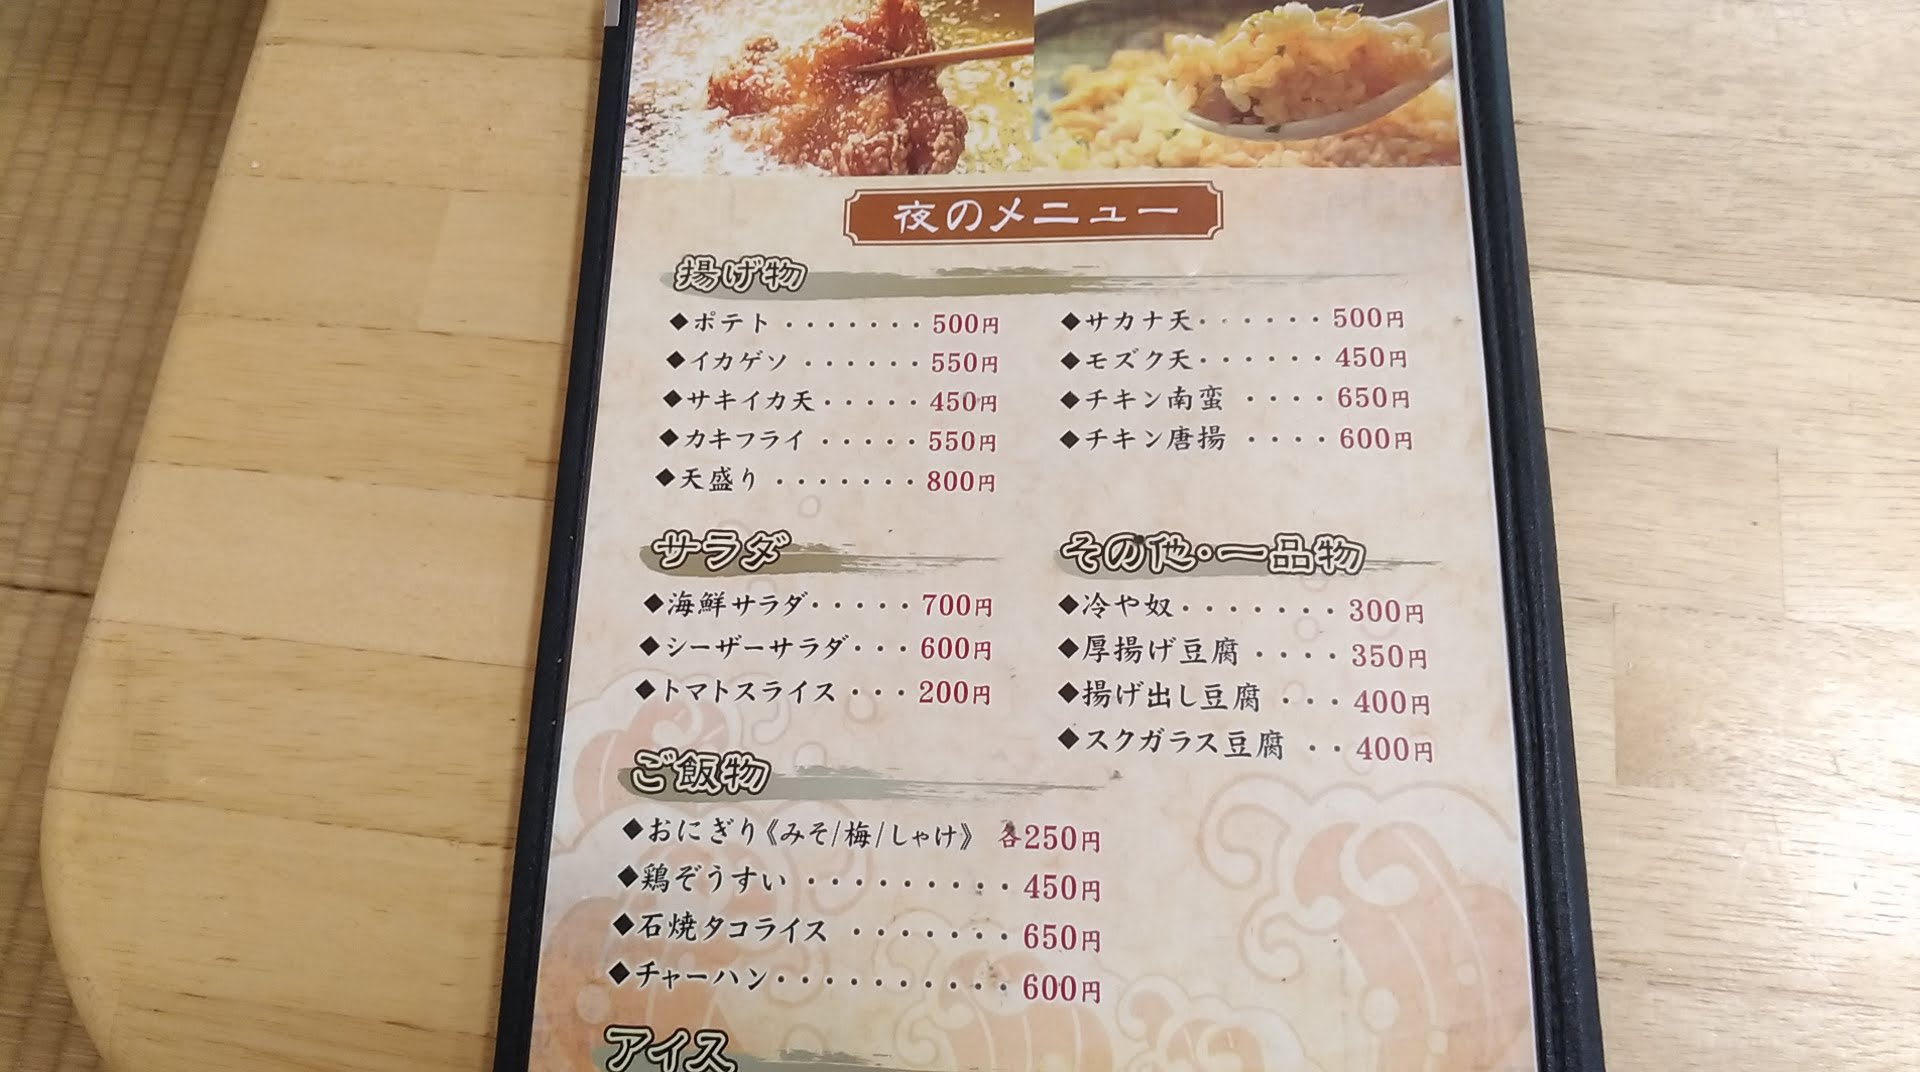 the menu of Oujima Seafood Restaurant 3